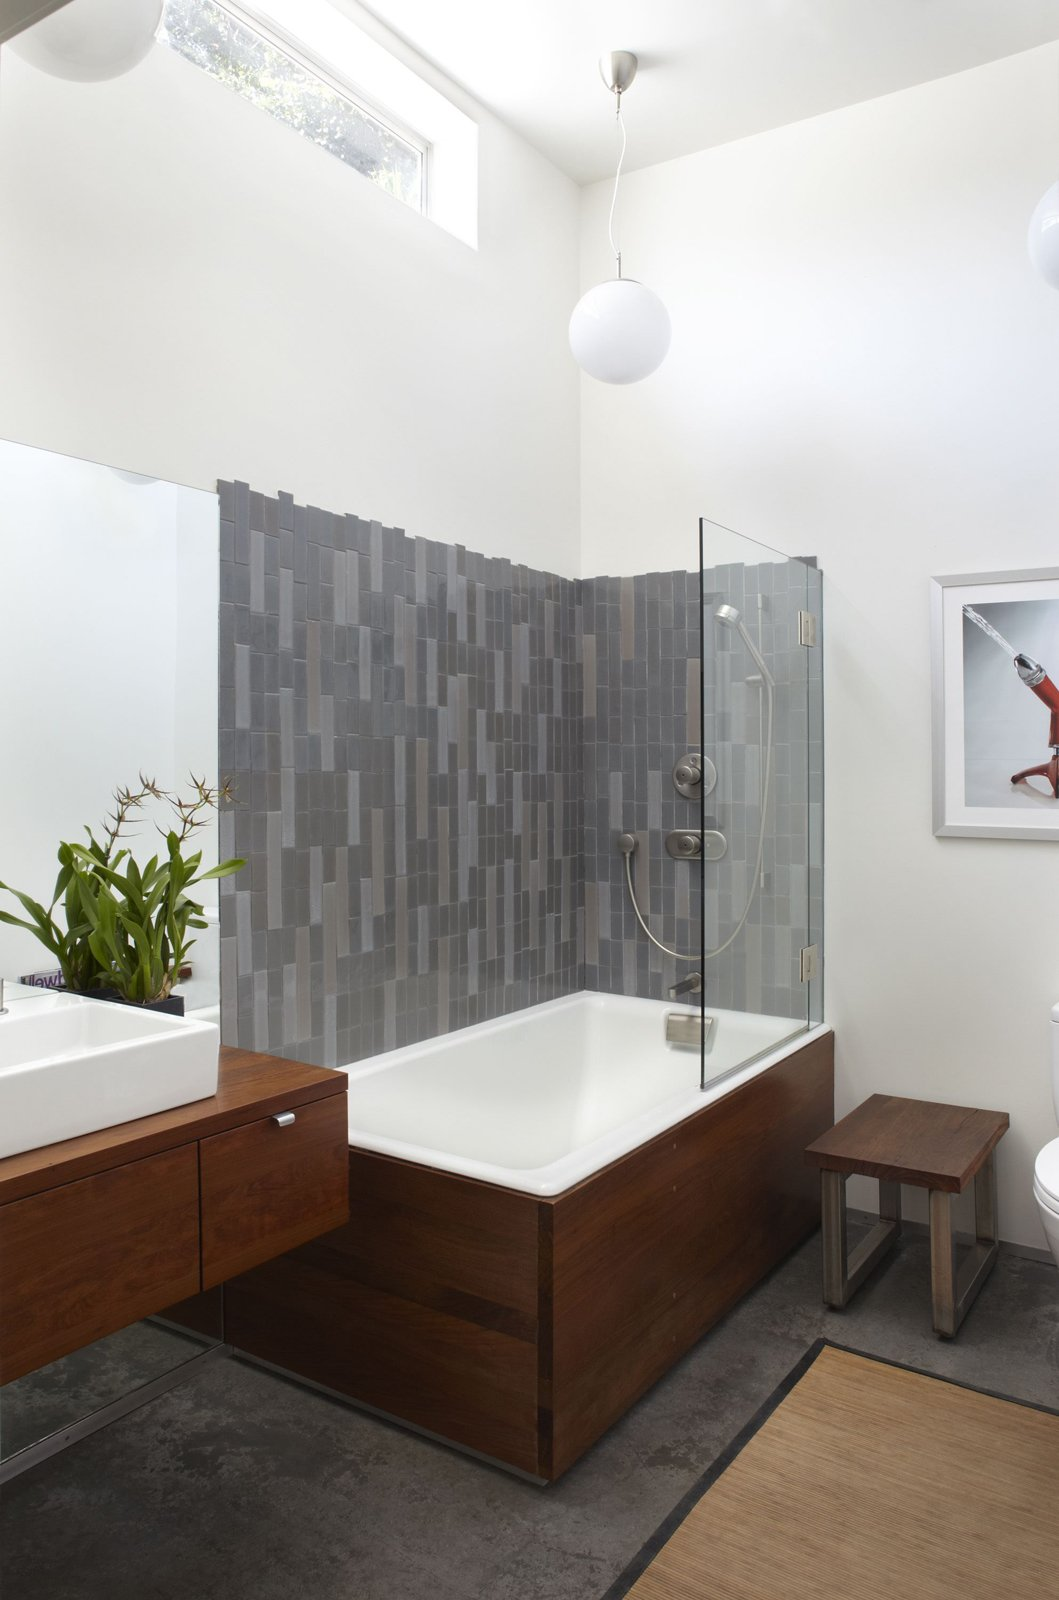 "Shoup accentuated the feeling of space in the master bath by opening it up to the full ceiling height. Ipe wood sheathes the sink and tub. ""The tile has the appearance of stranding to play off the bamboo in the bedroom,"" notes Shoup, who sourced the tile at Heath Ceramics' seconds warehouse. ""I pulled a bunch of their less-than-perfect tiles. They're a little bent, and the glazing is a bit off, but the lack of perfection actually serves us well."" The light fixtures are from Ikea. Photo by building Lab inc."